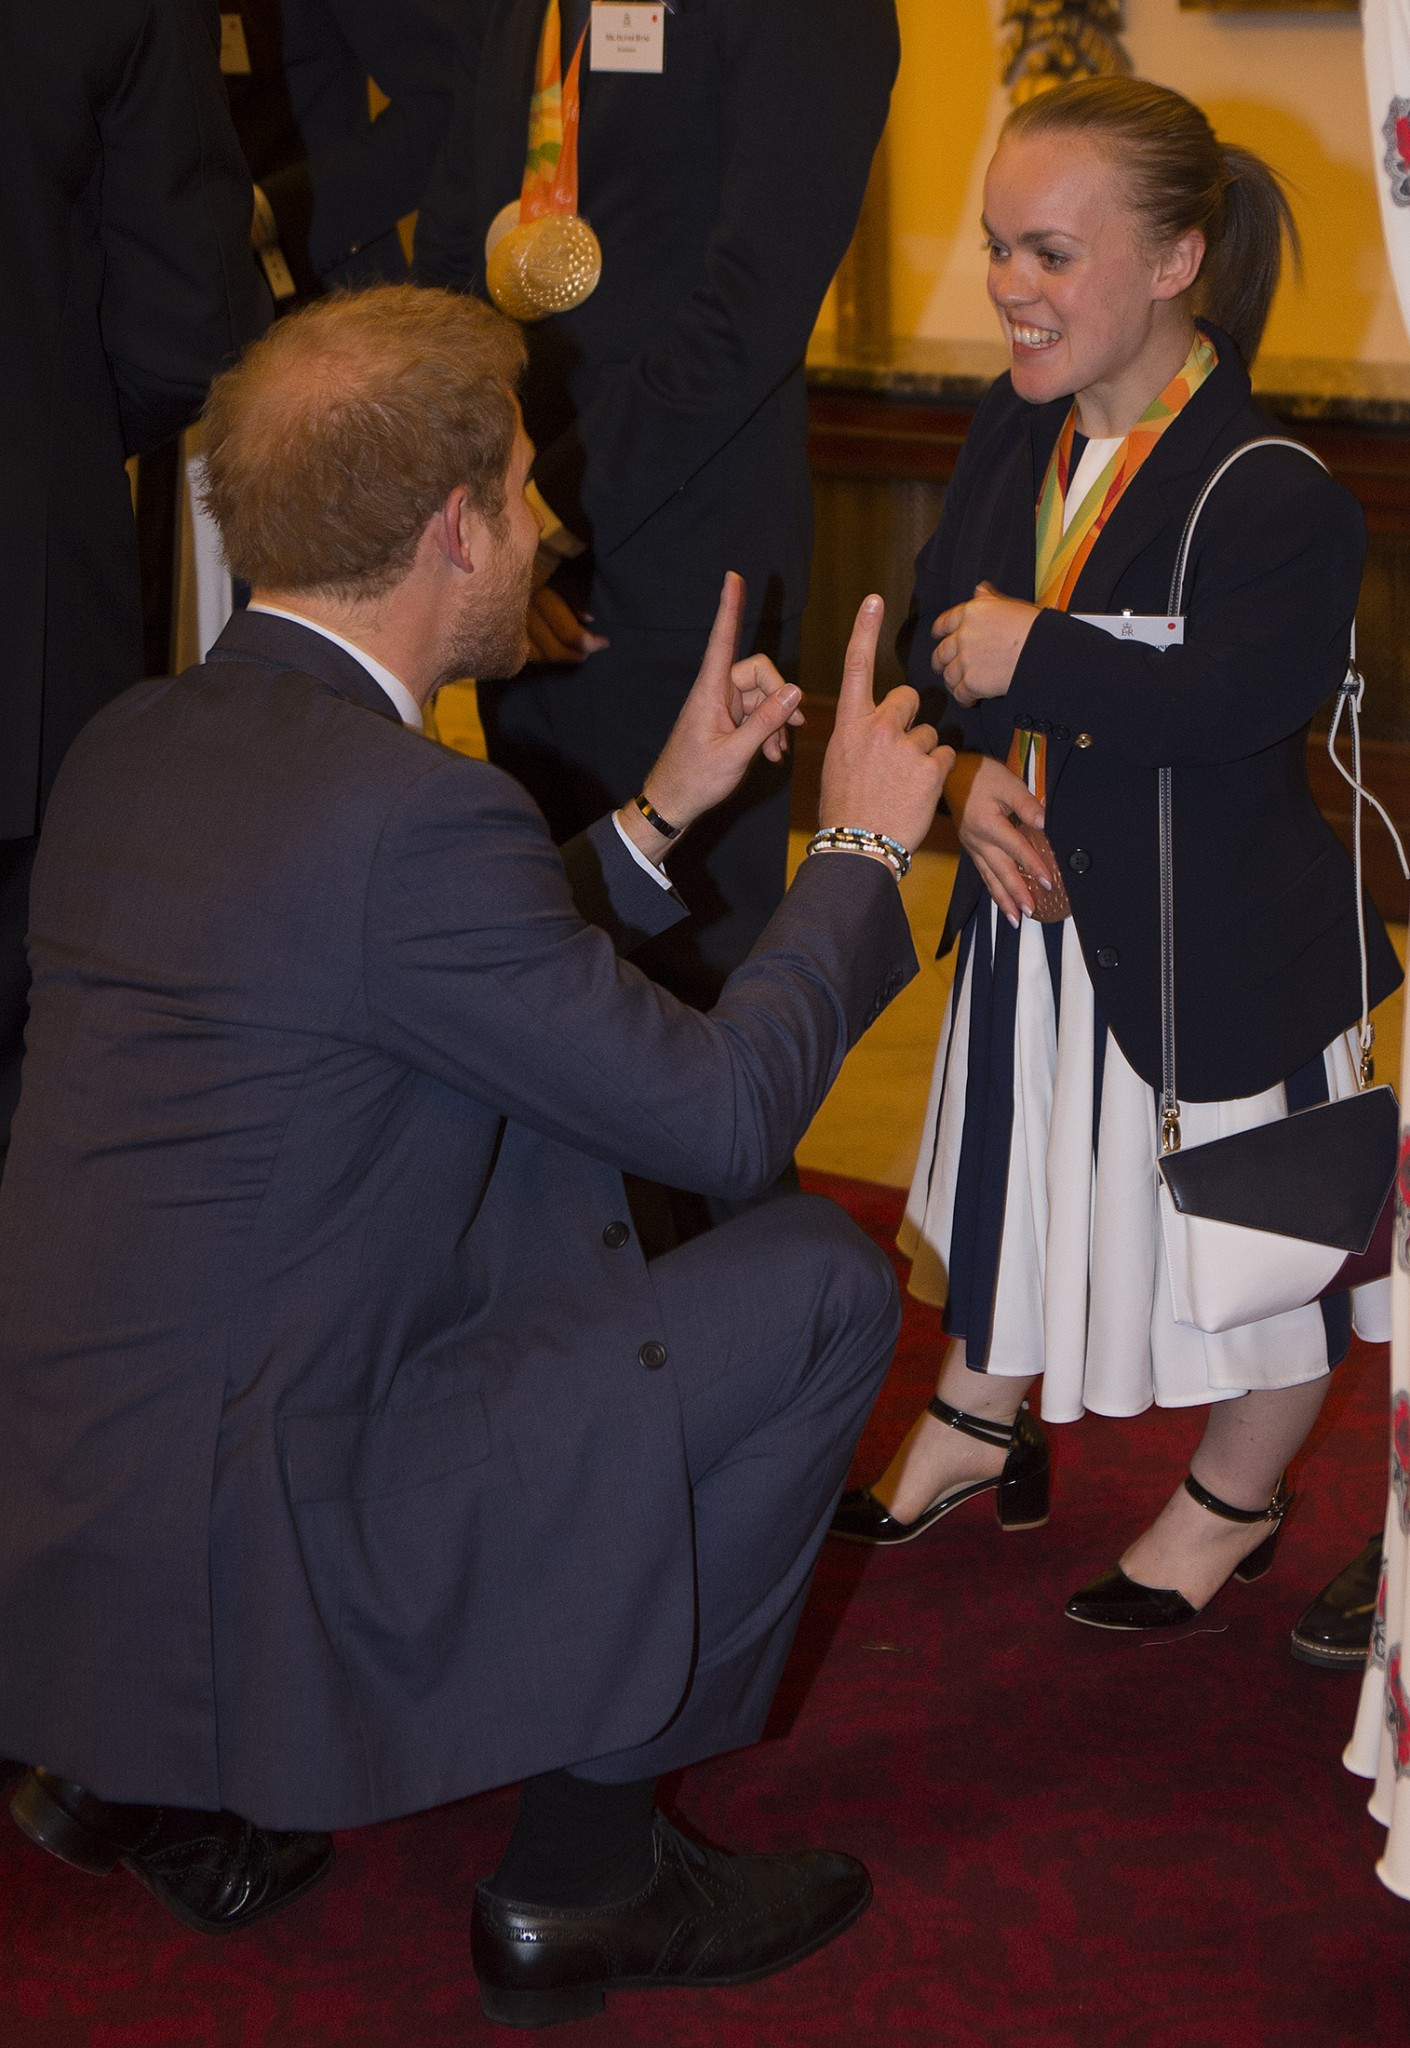 Ellie Simmonds chats with Prince Harry at a Buckingham Palace reception for Britain's Olympic and Paralympic teams from the Rio Games ©Getty Images